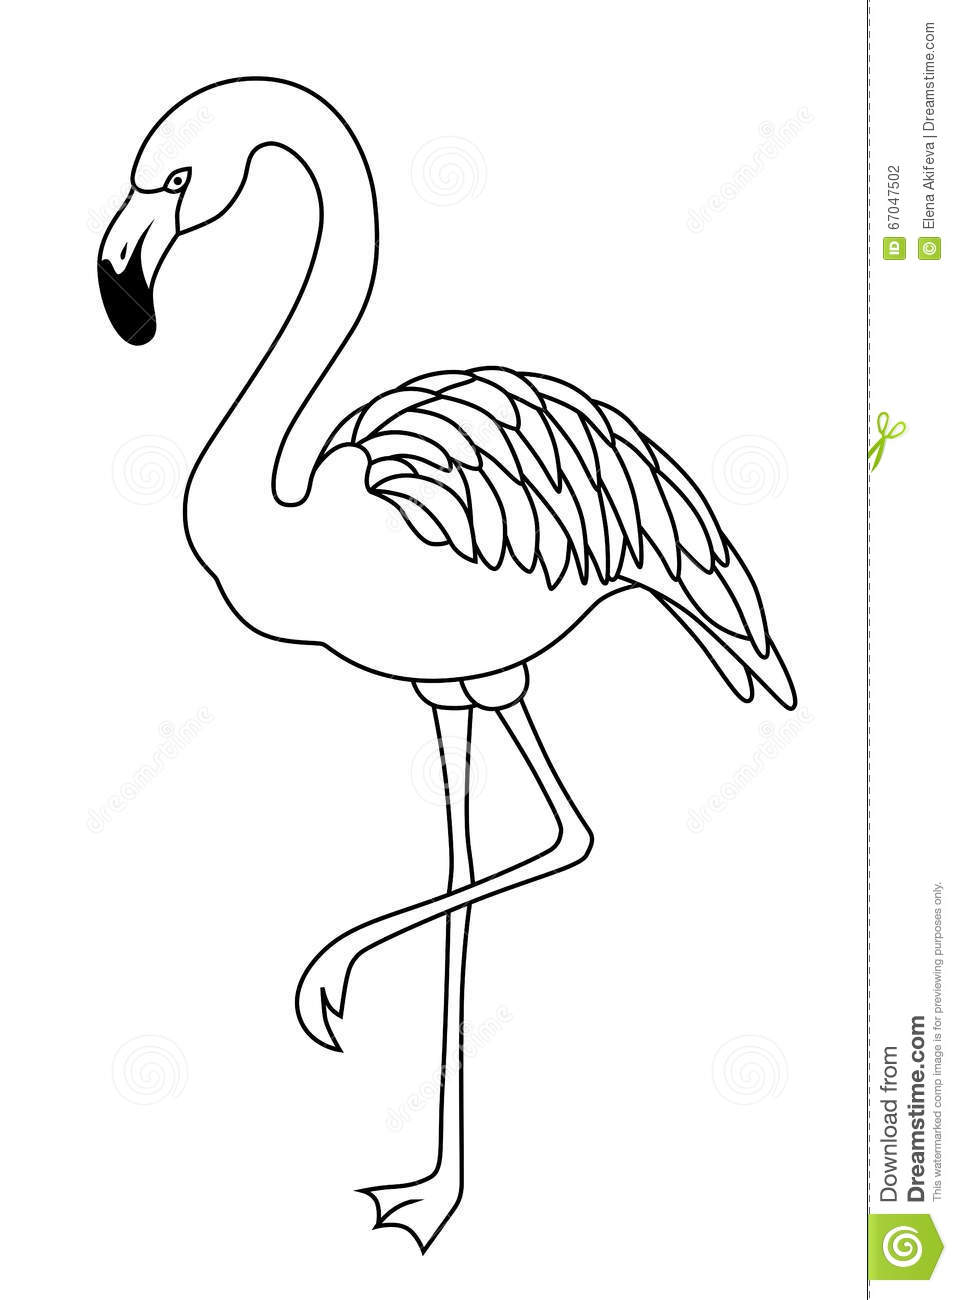 Flamingo Black White Bird Illustration Stock Vector ... Flamingo Outline